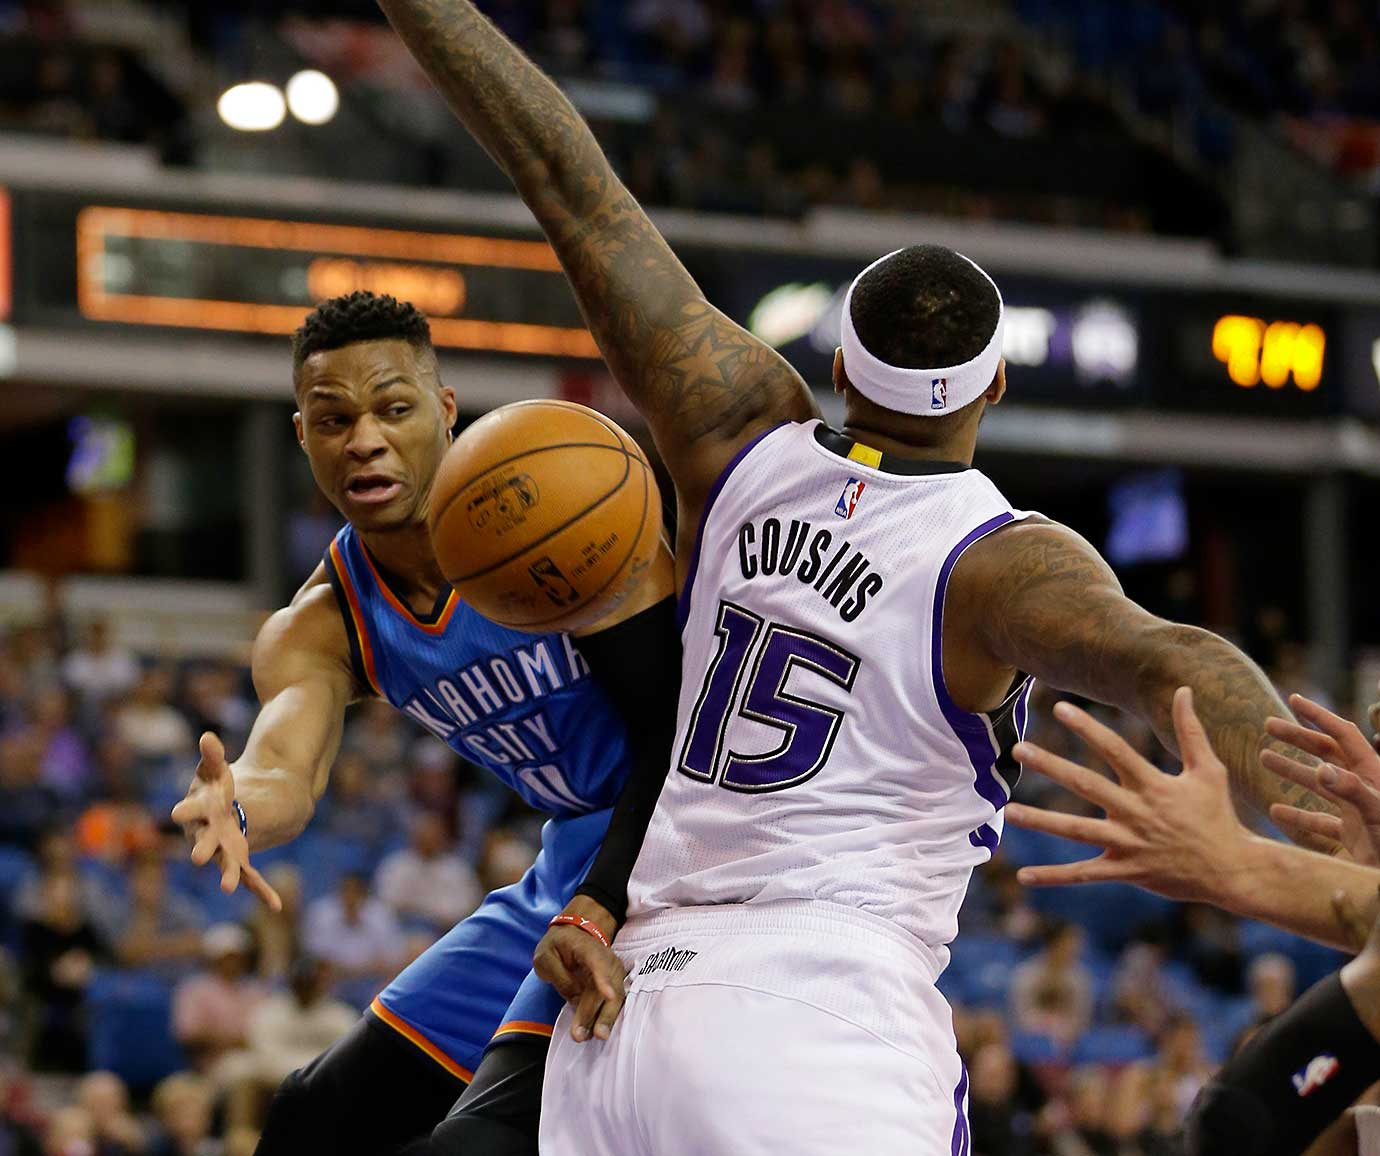 Here are some of the images that caught our eye on the sports night of Feb. 29, starting with Russell Westbrook passing around DeMarcus Cousins.